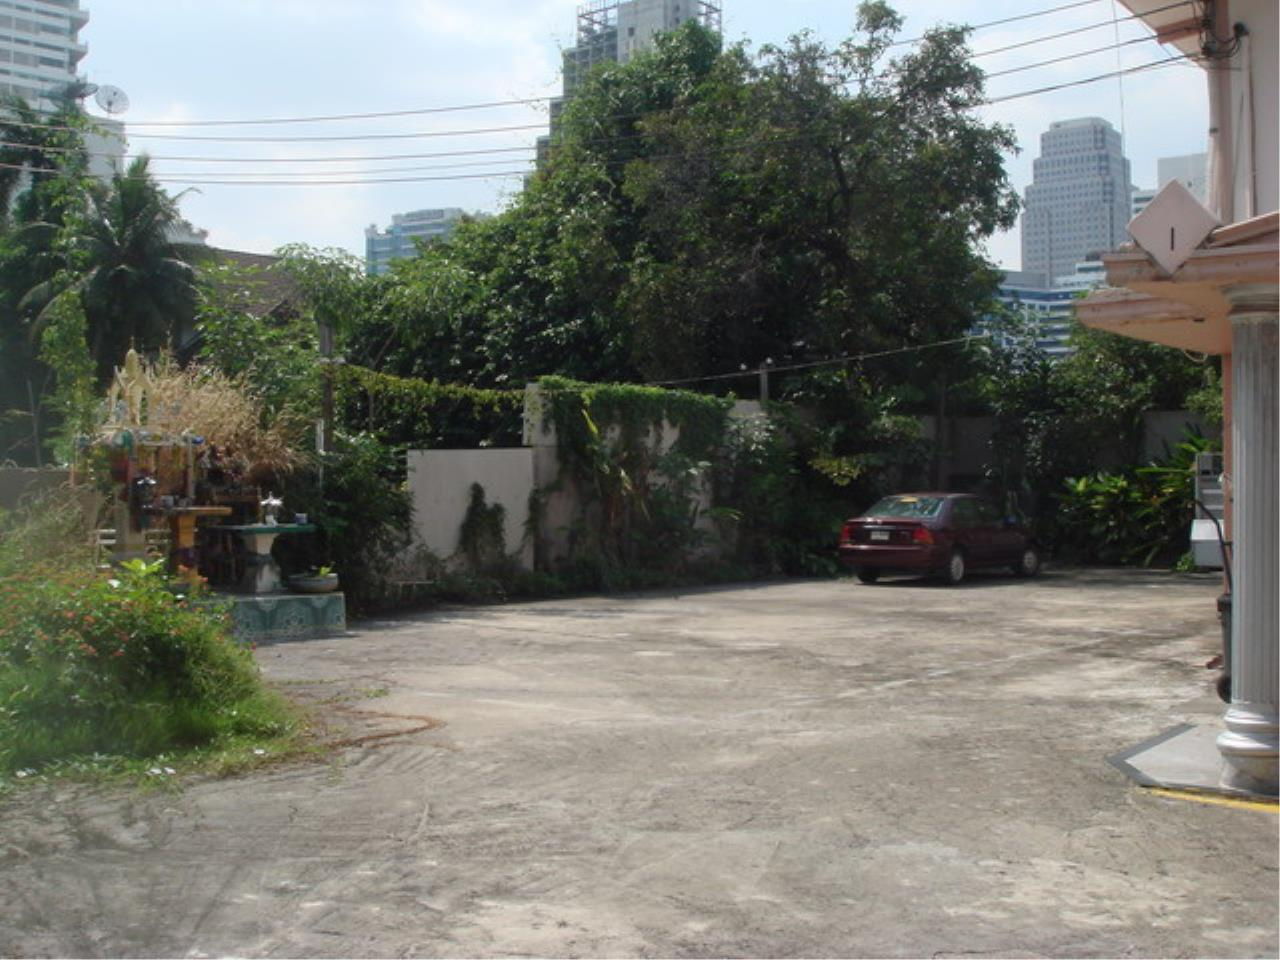 29885-Land with house for rent, on Sukhumwit 33 road, 153 sq.wa.